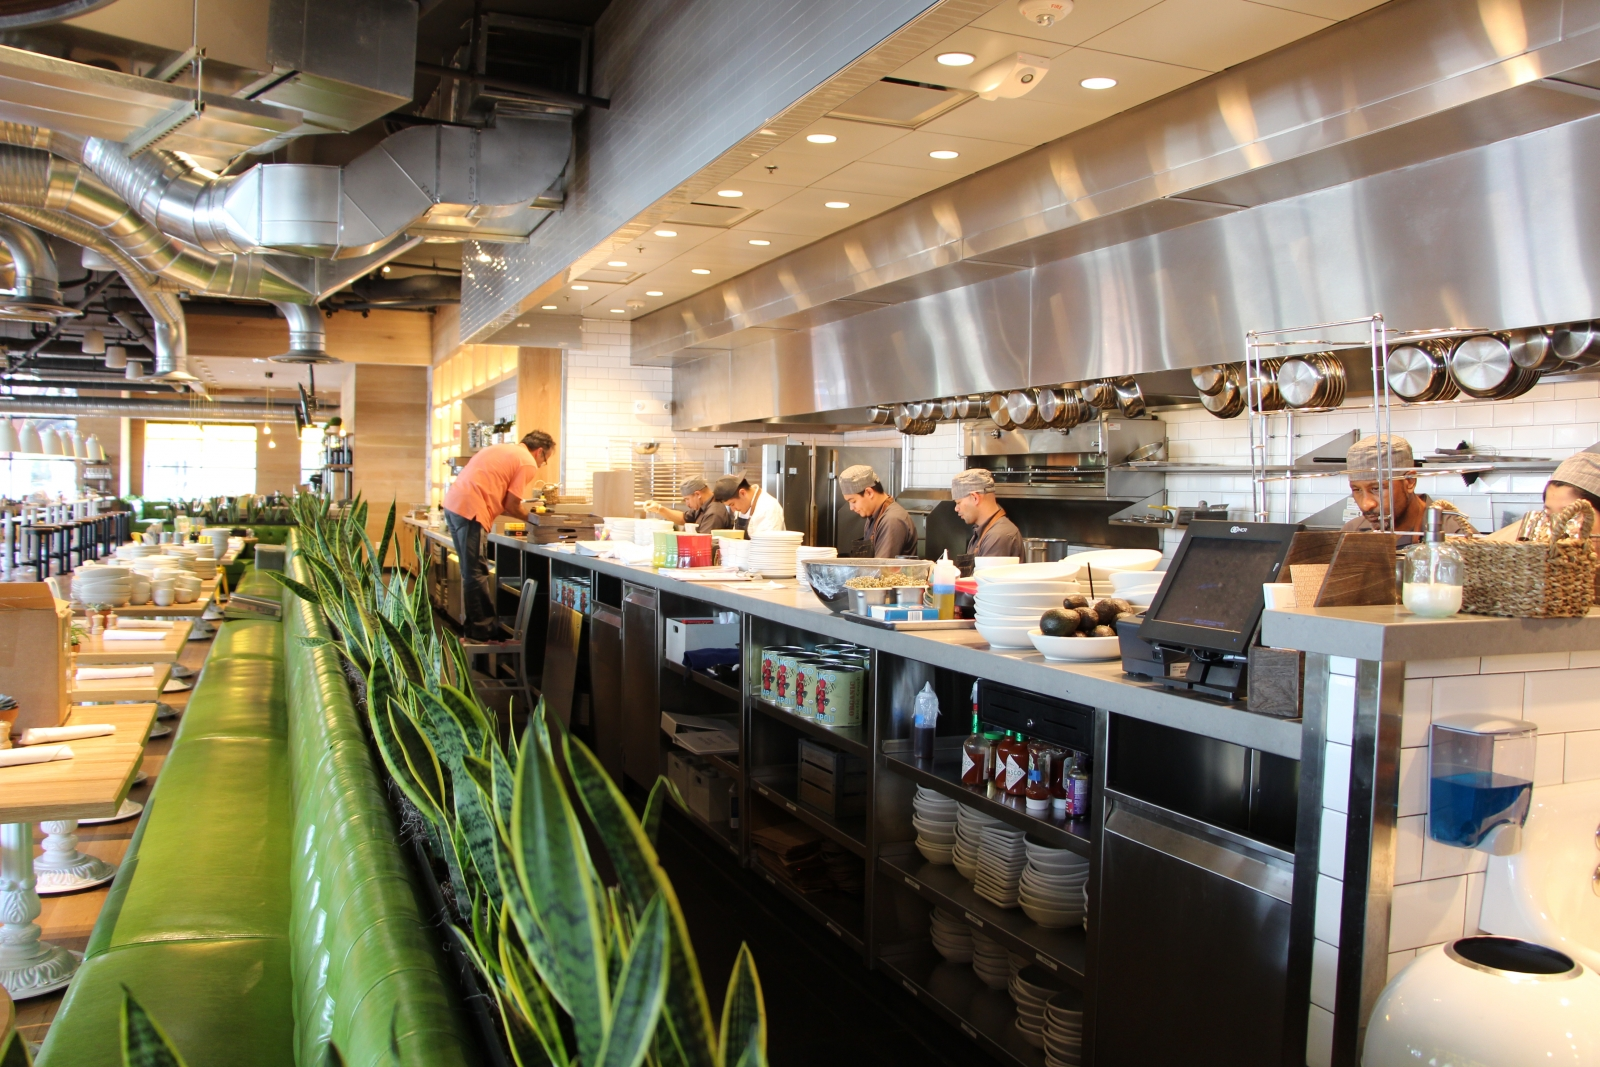 true food kitchen officially opened wednesday in the bottom floor of solaire bethesda on 7100 wisconsin ave in downtown bethesda - True Food Kitchen Bethesda